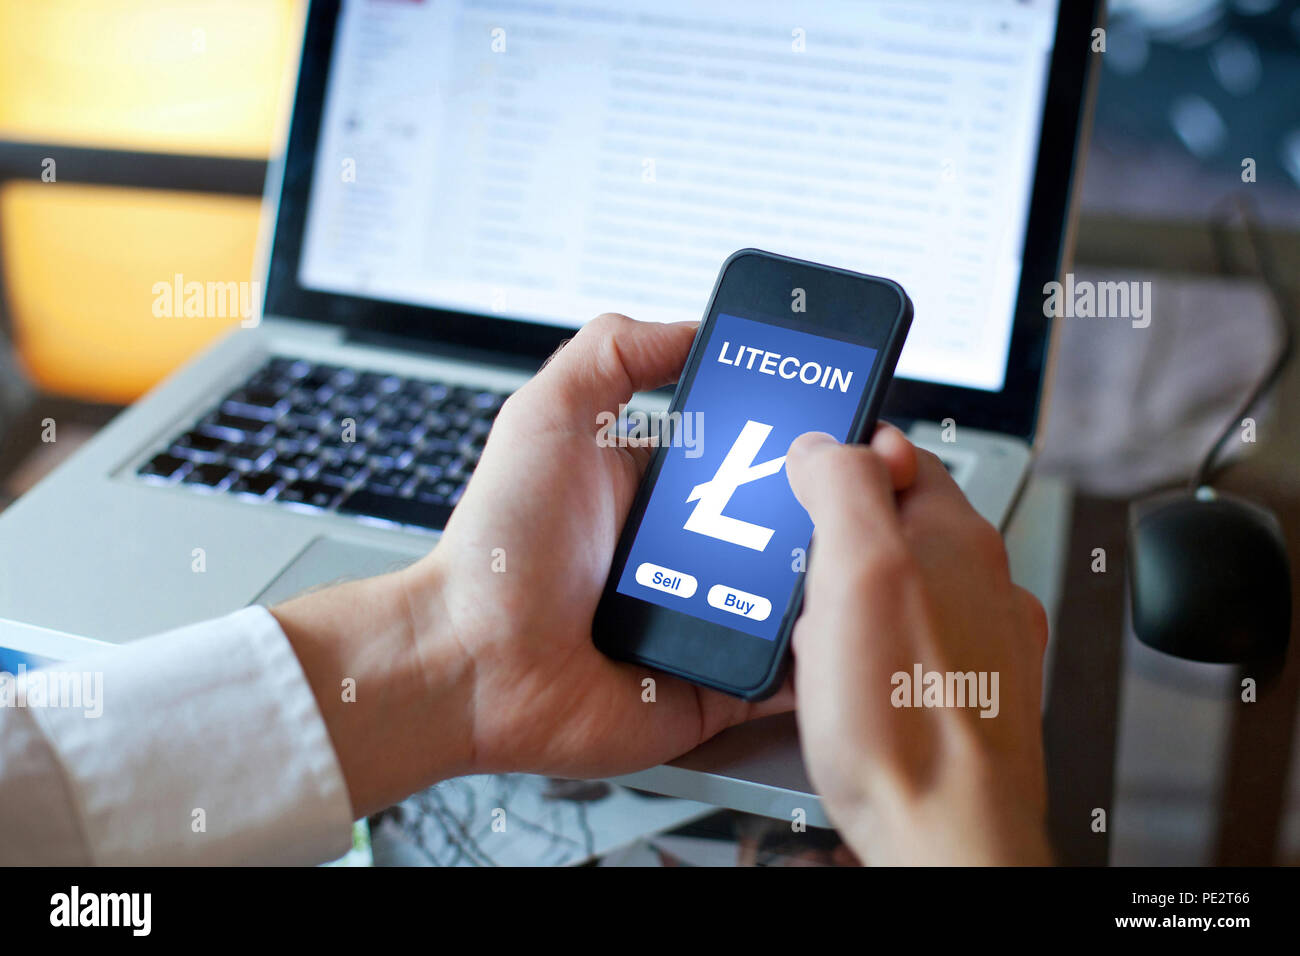 Litecoin cryptocurrency concept, acheter ou vendre des devises crypto Photo Stock